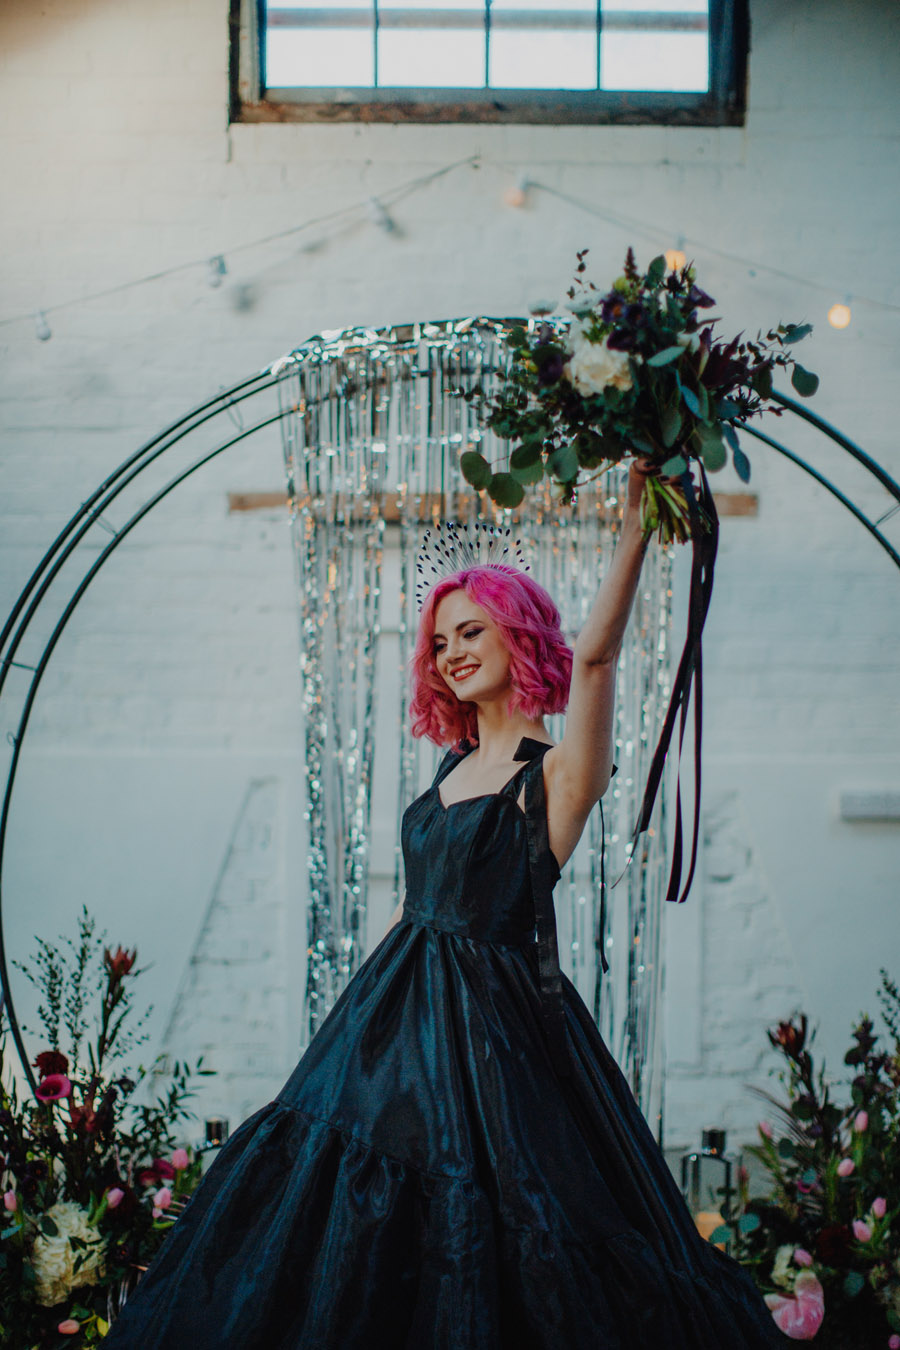 Alternative Monochrome wedding inspo at White Syke Fields with Alt Wedding Co (16)